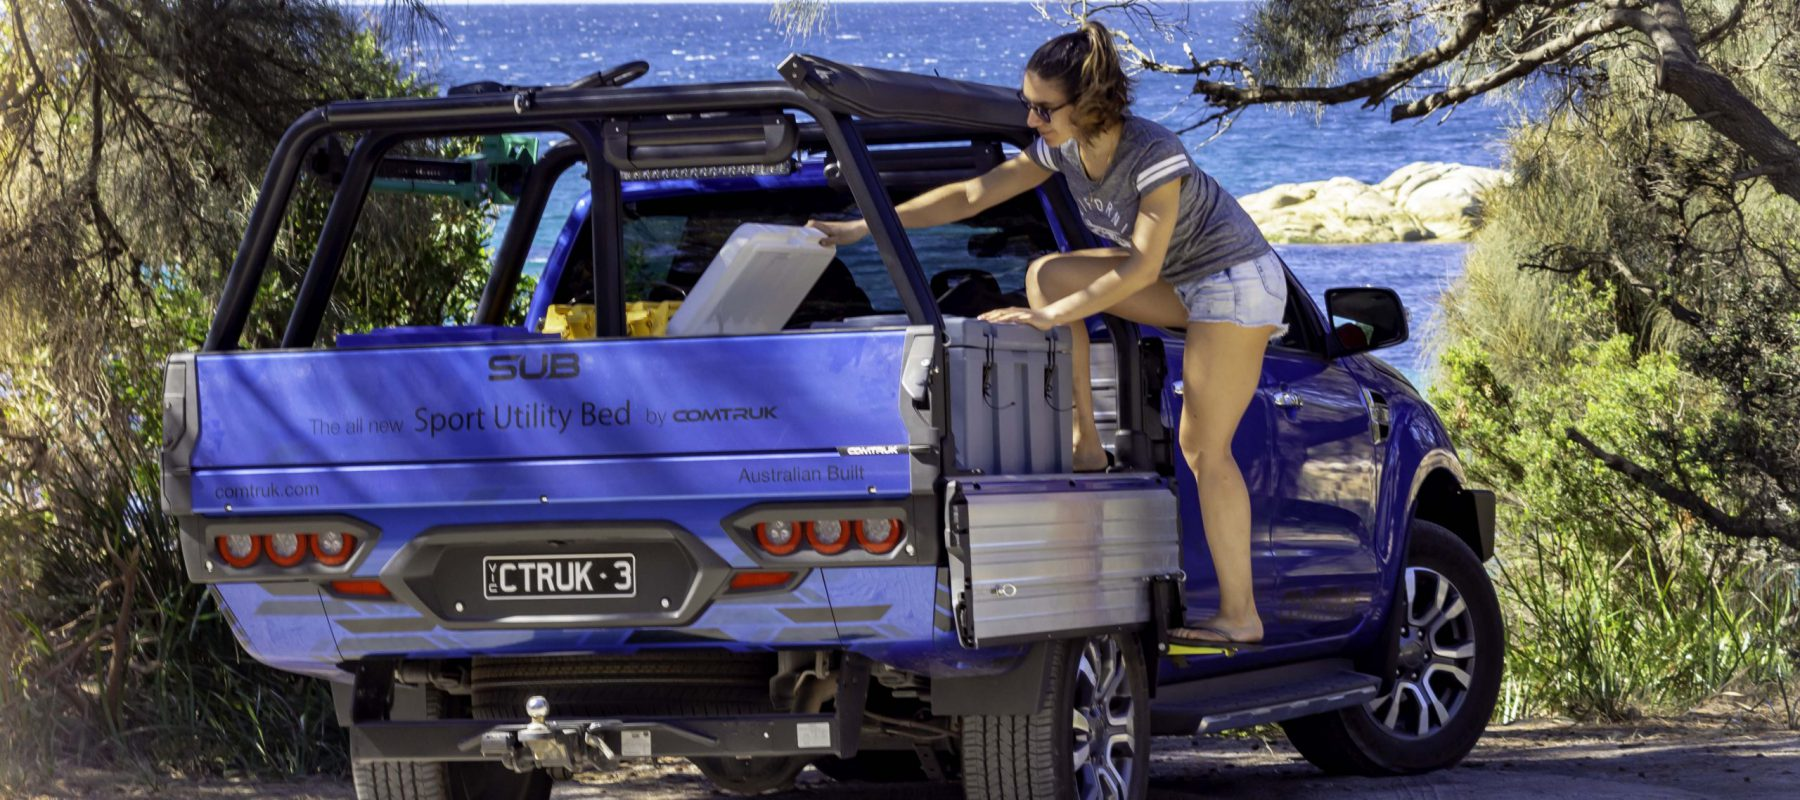 image of a Ford Ranger SUB loaded for camping and sport in Tasmania